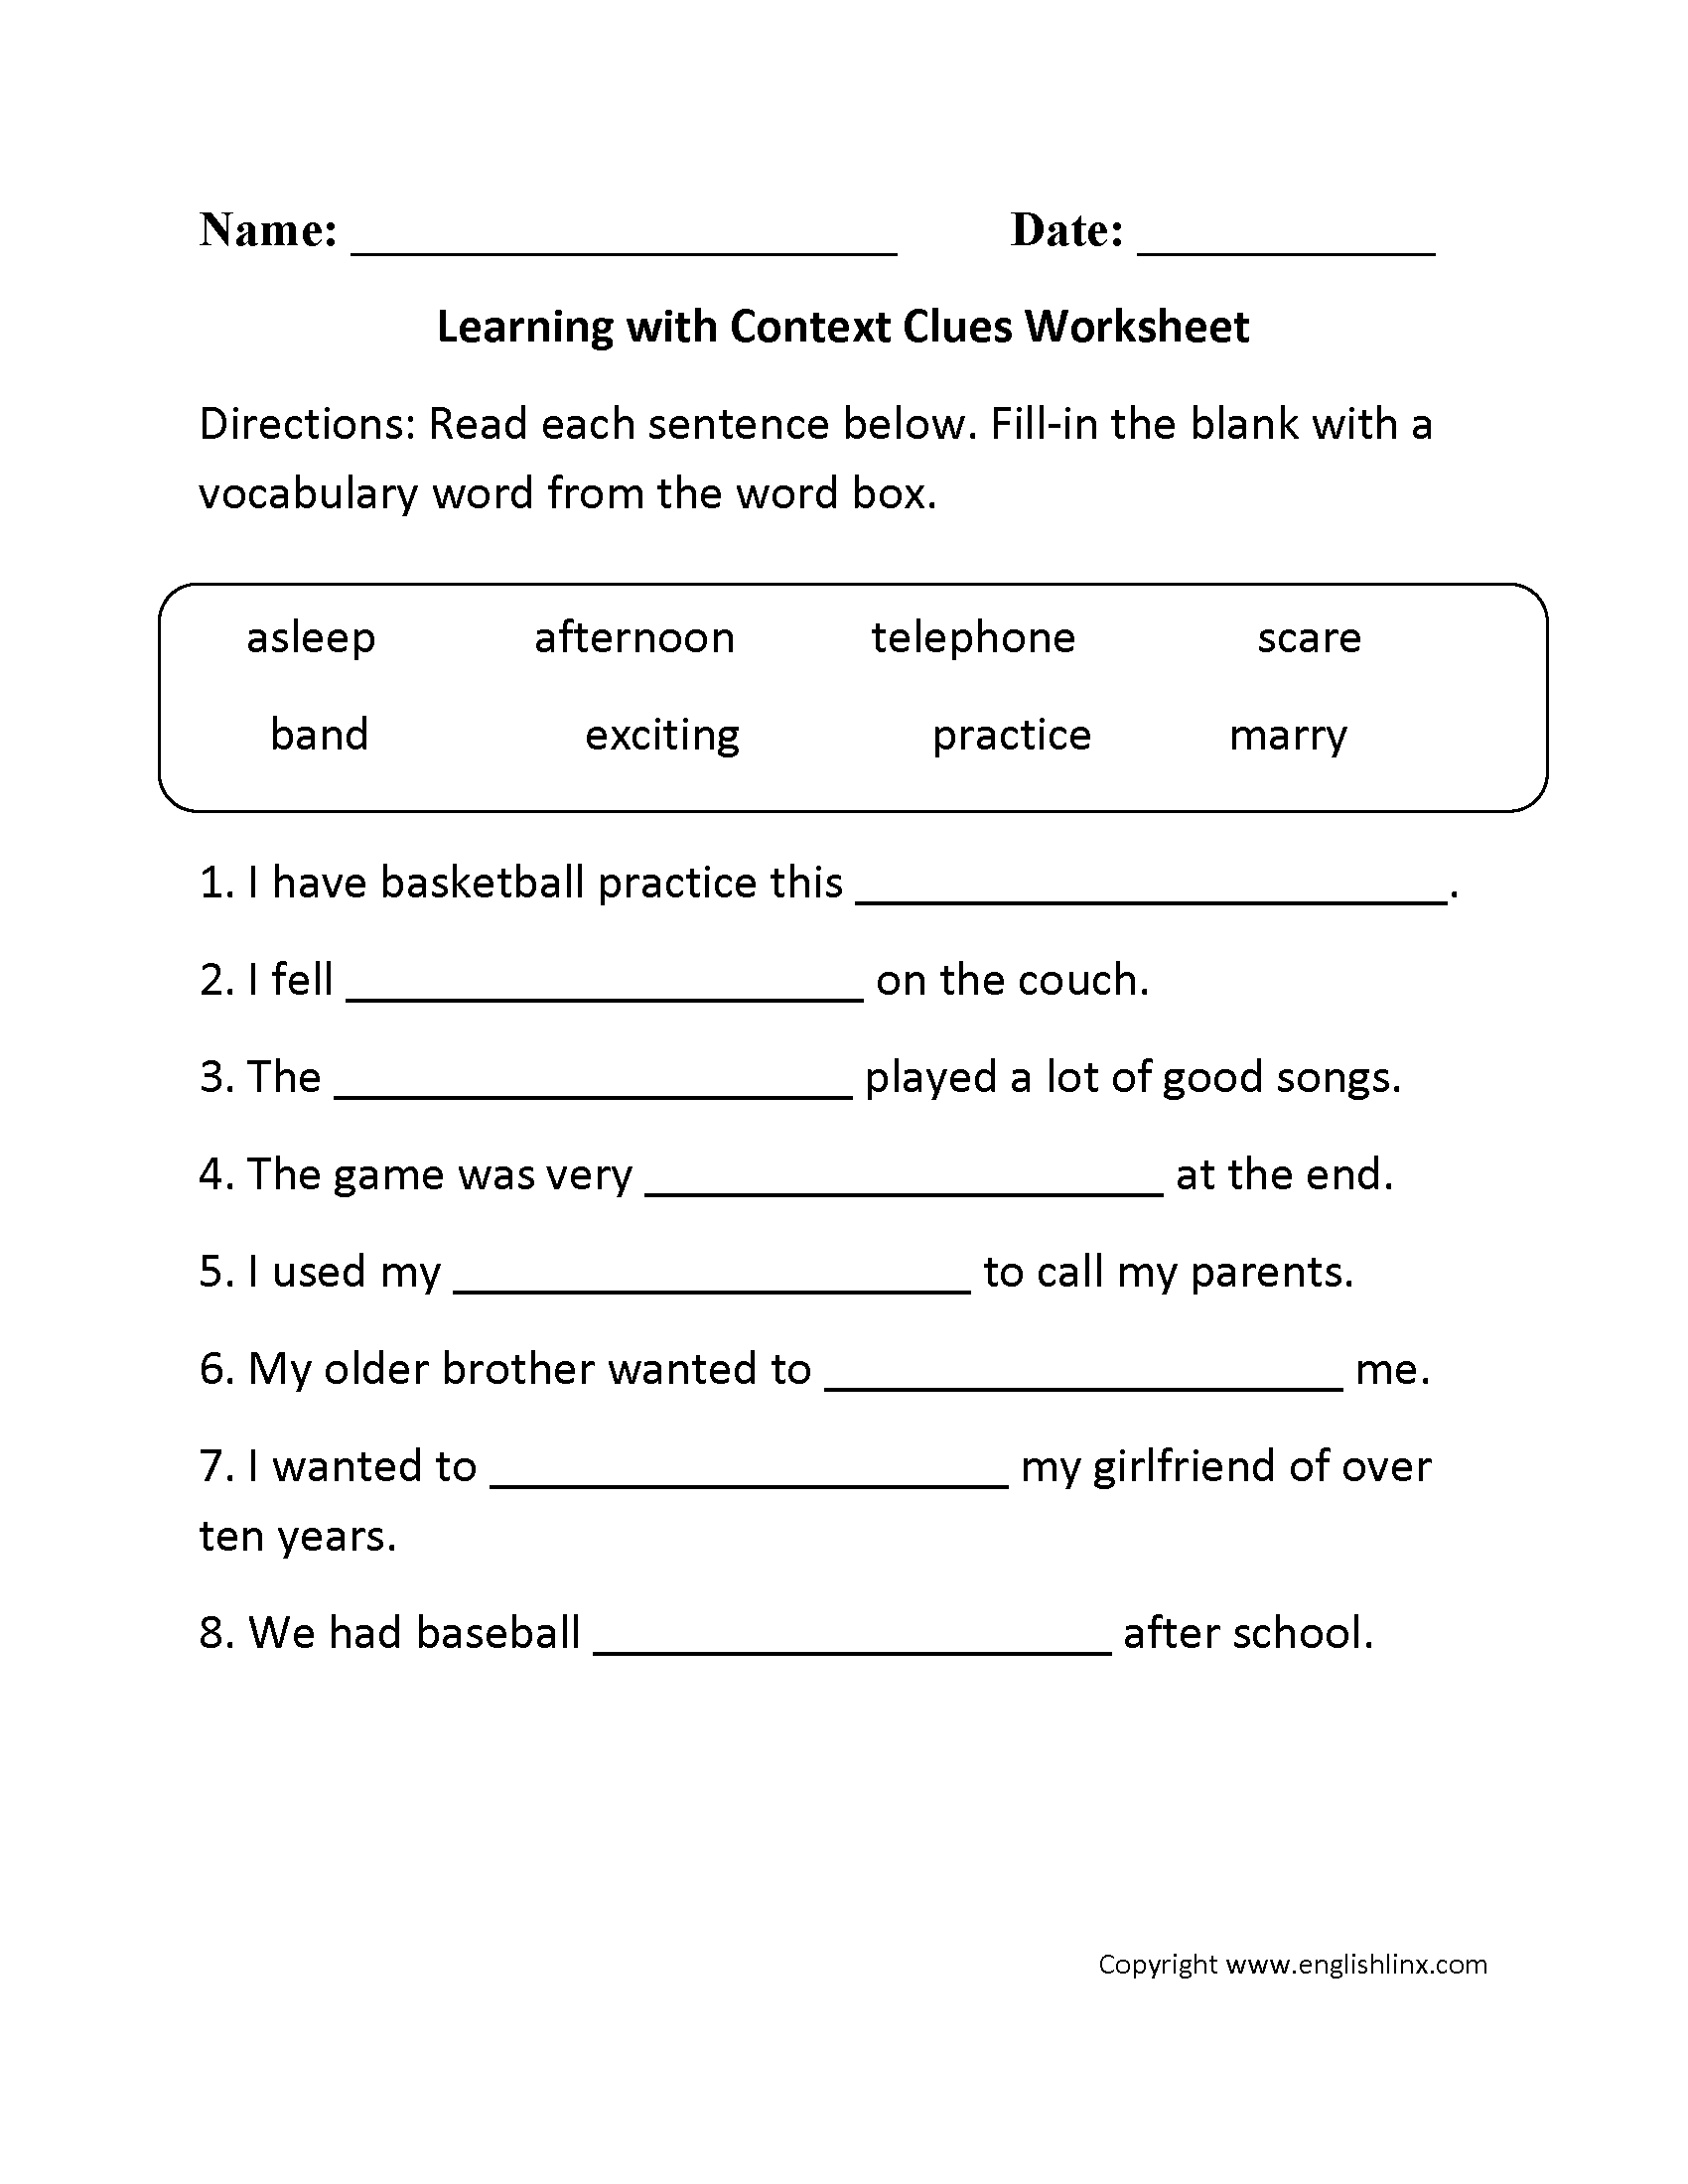 Worksheets Context Clues Worksheets 4th Grade